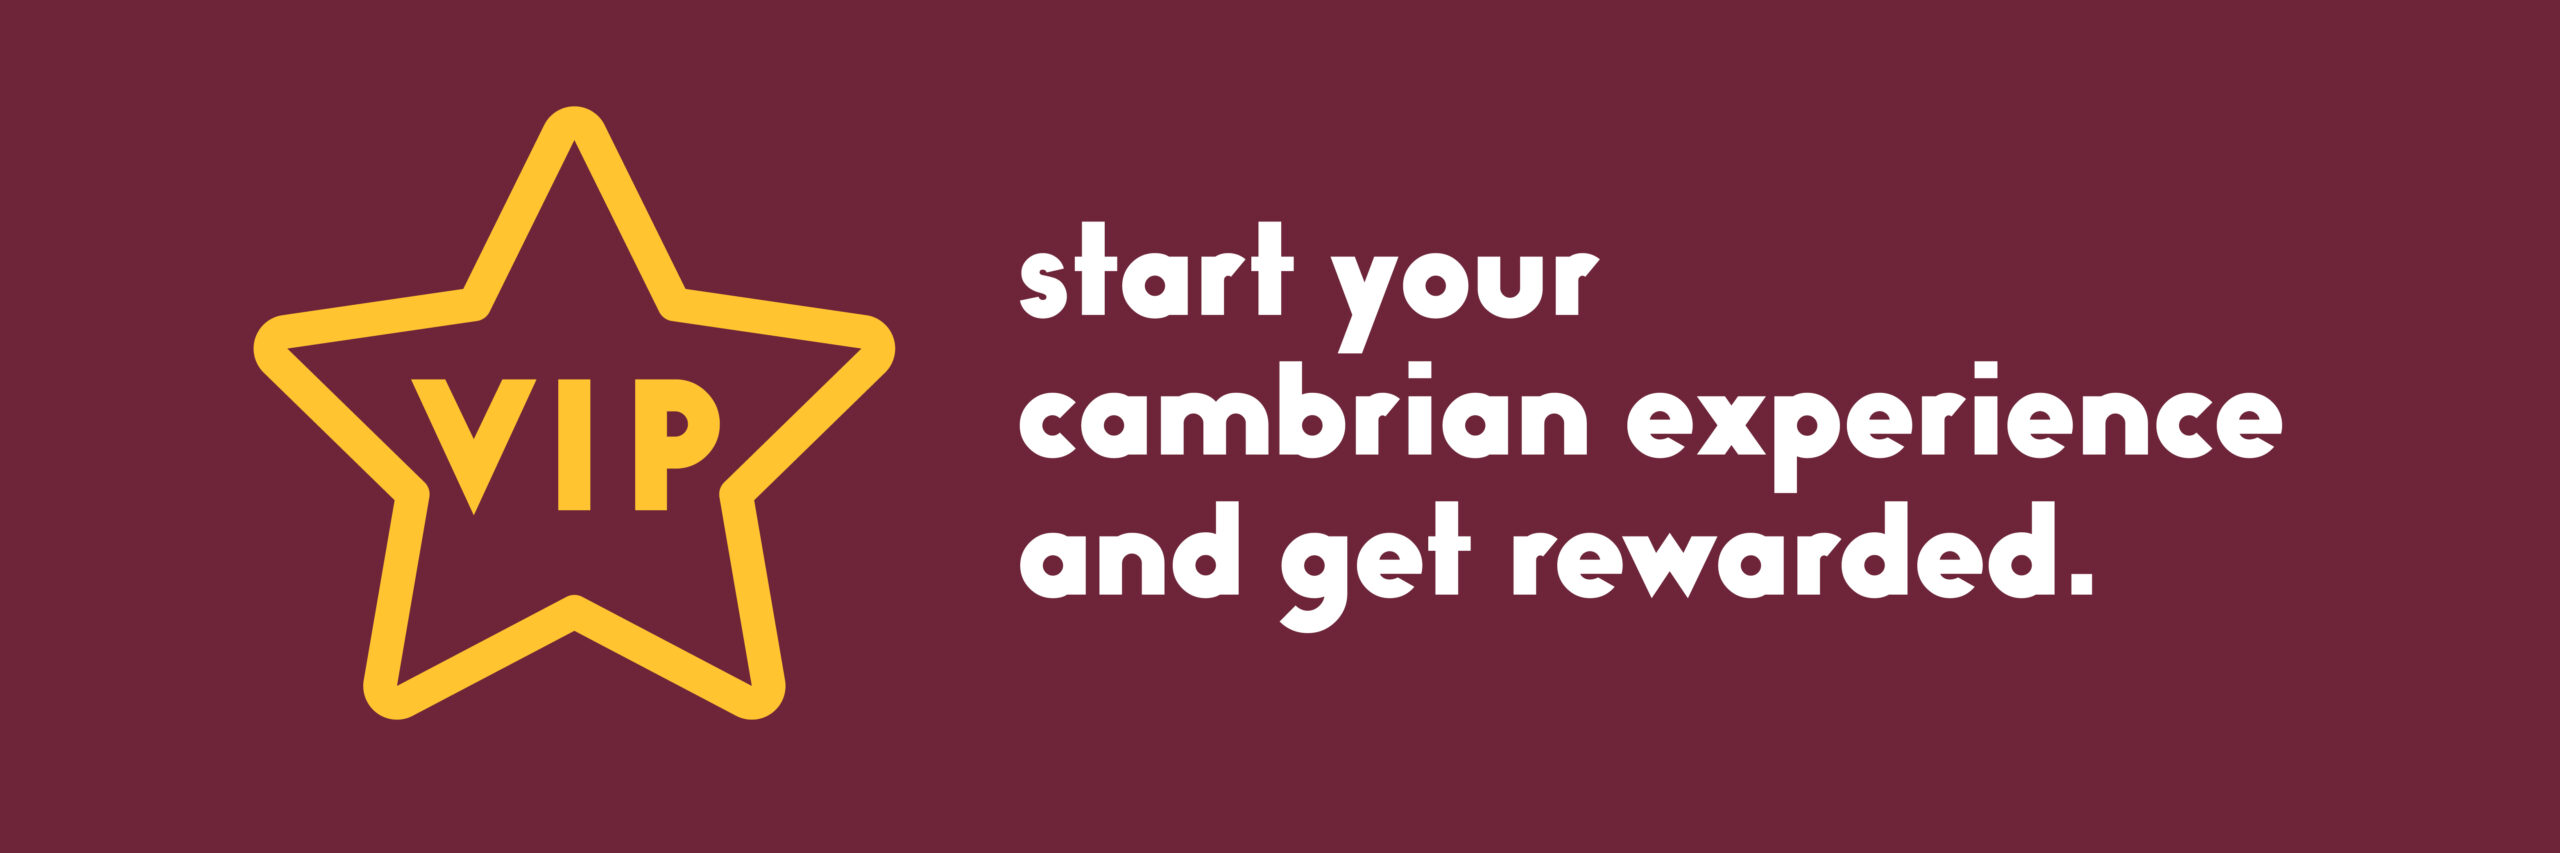 Start Your Cambrian Experience and Get Rewarded